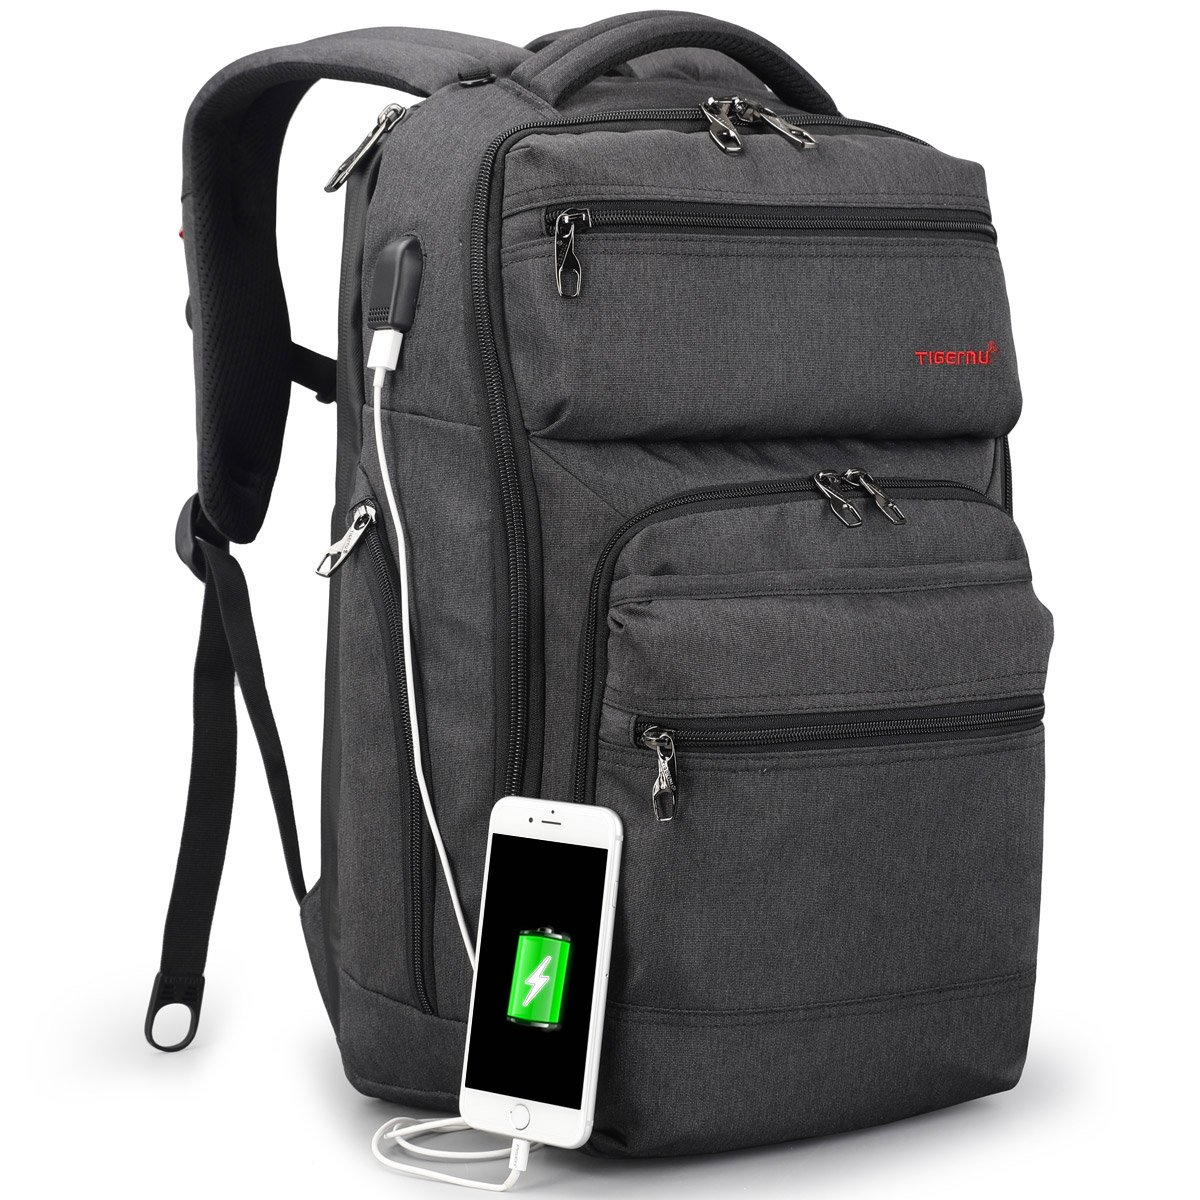 TIGERNU Business Backpack fits 15.6 Inch laptop/notebook Computer Backpack with USB Charging Port/ Water Resistant/ Tear Resisting/ Lightweight Travel Bag (Dark Gray)